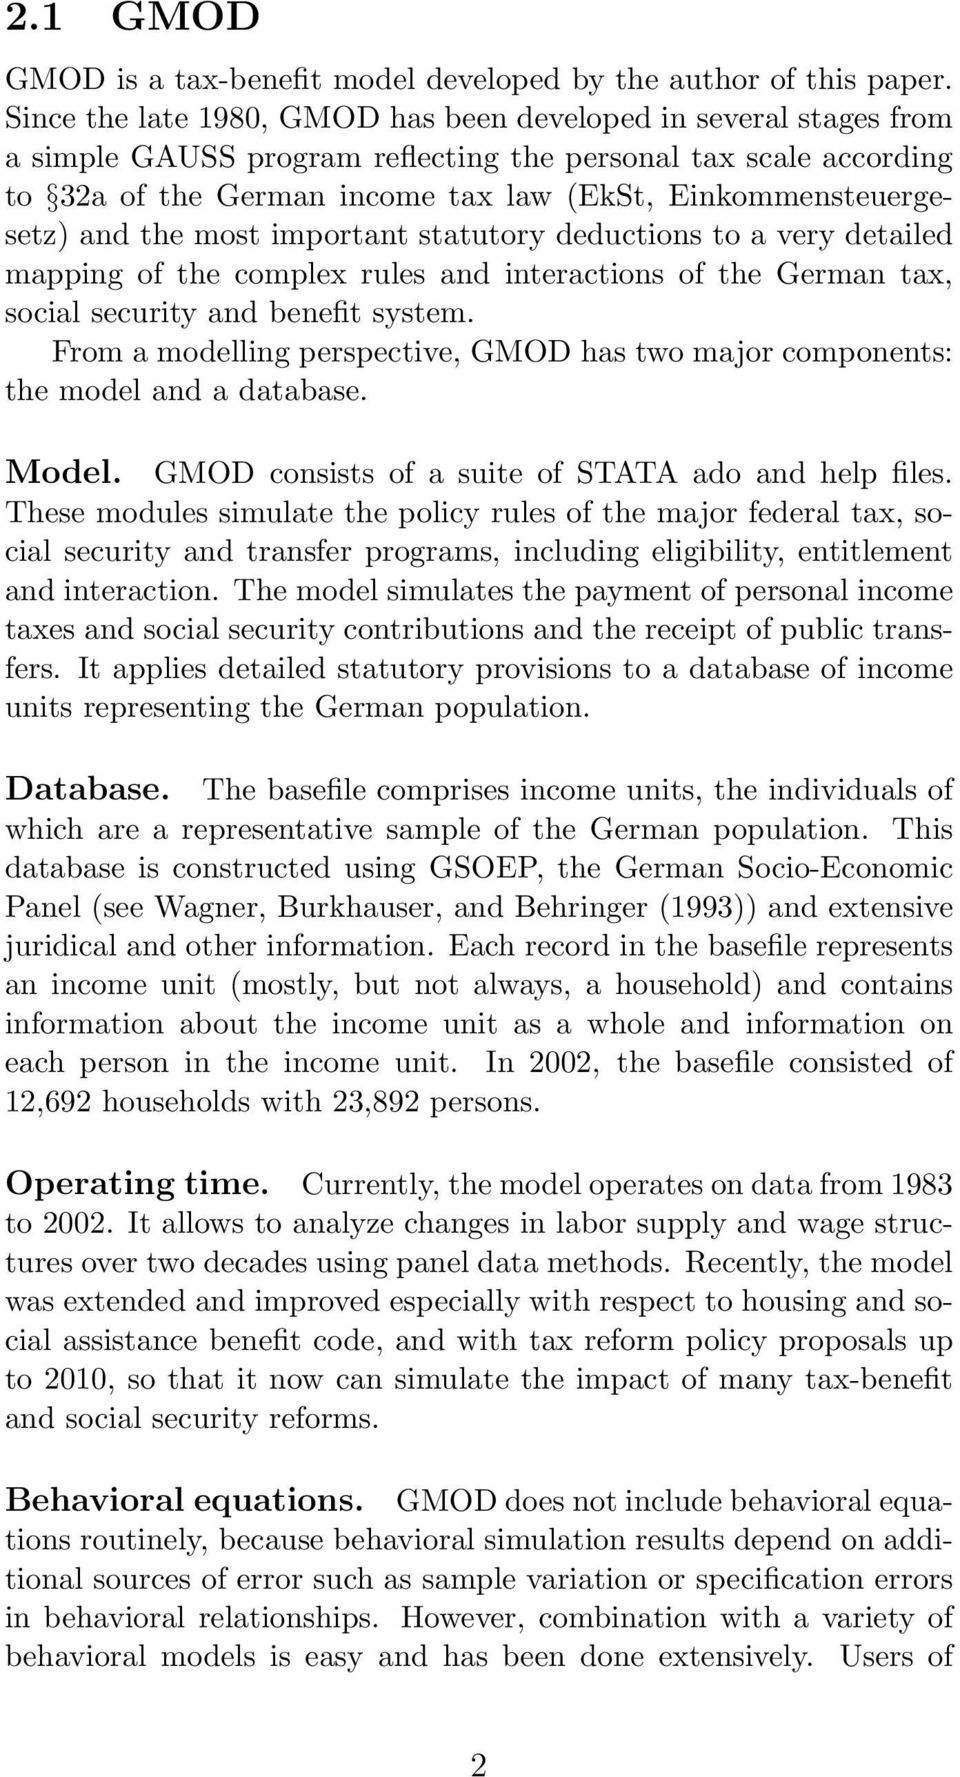 Einkommensteuergesetz) and the most important statutory deductions to a very detailed mapping of the complex rules and interactions of the German tax, social security and benefit system.